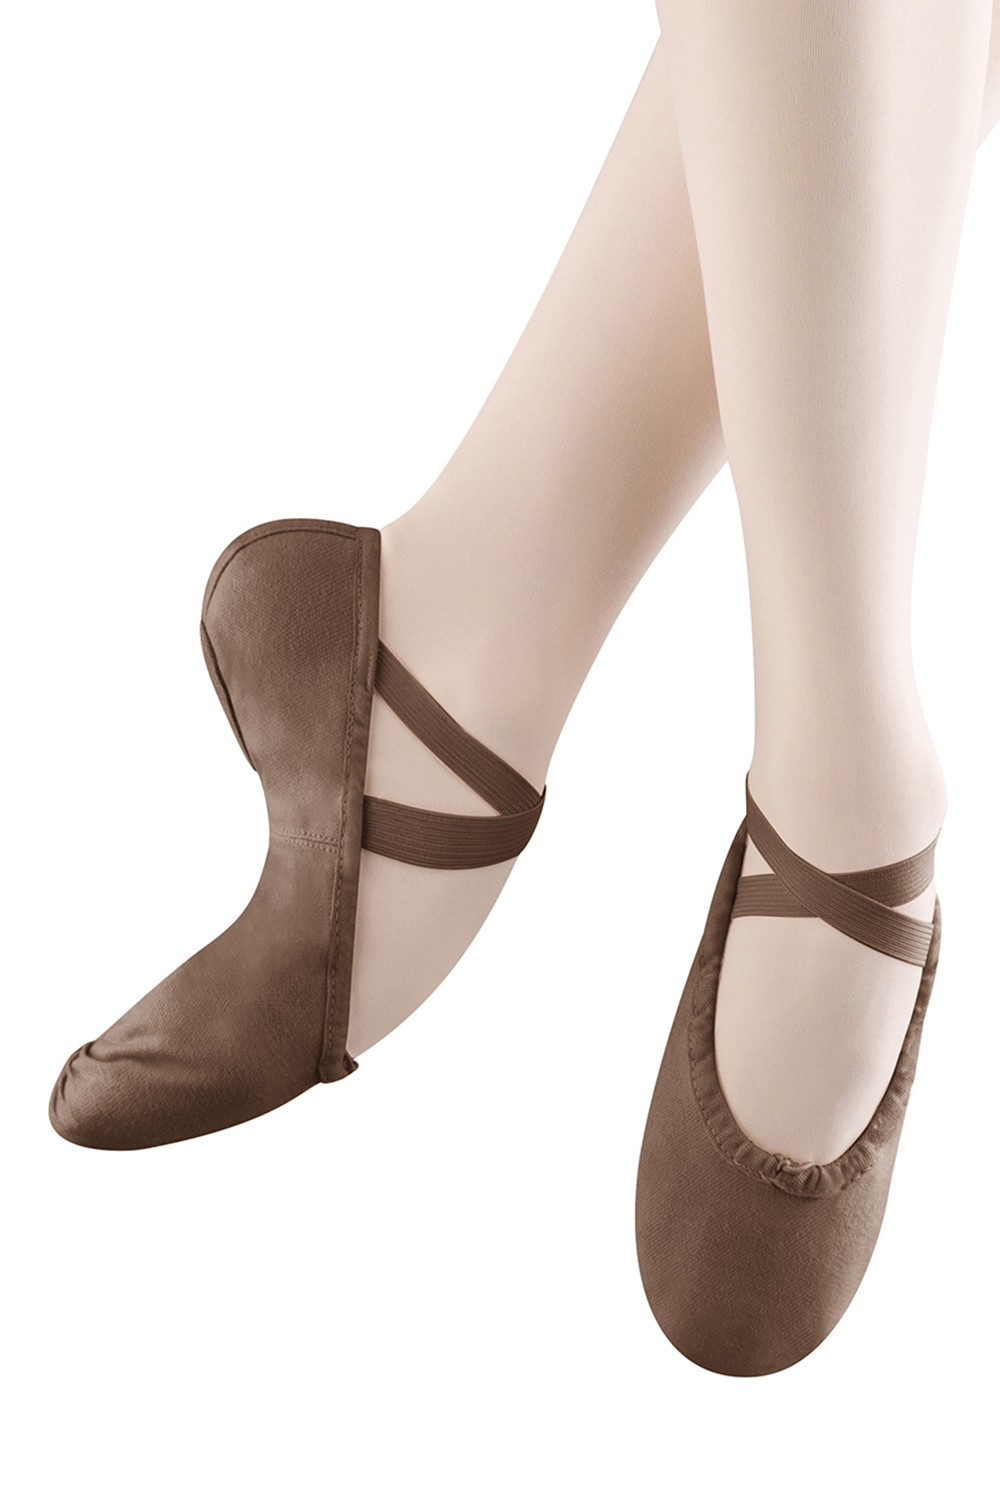 8649325d4 BLOCH® Innovative Dance Shoes For Women - BLOCH® US Store